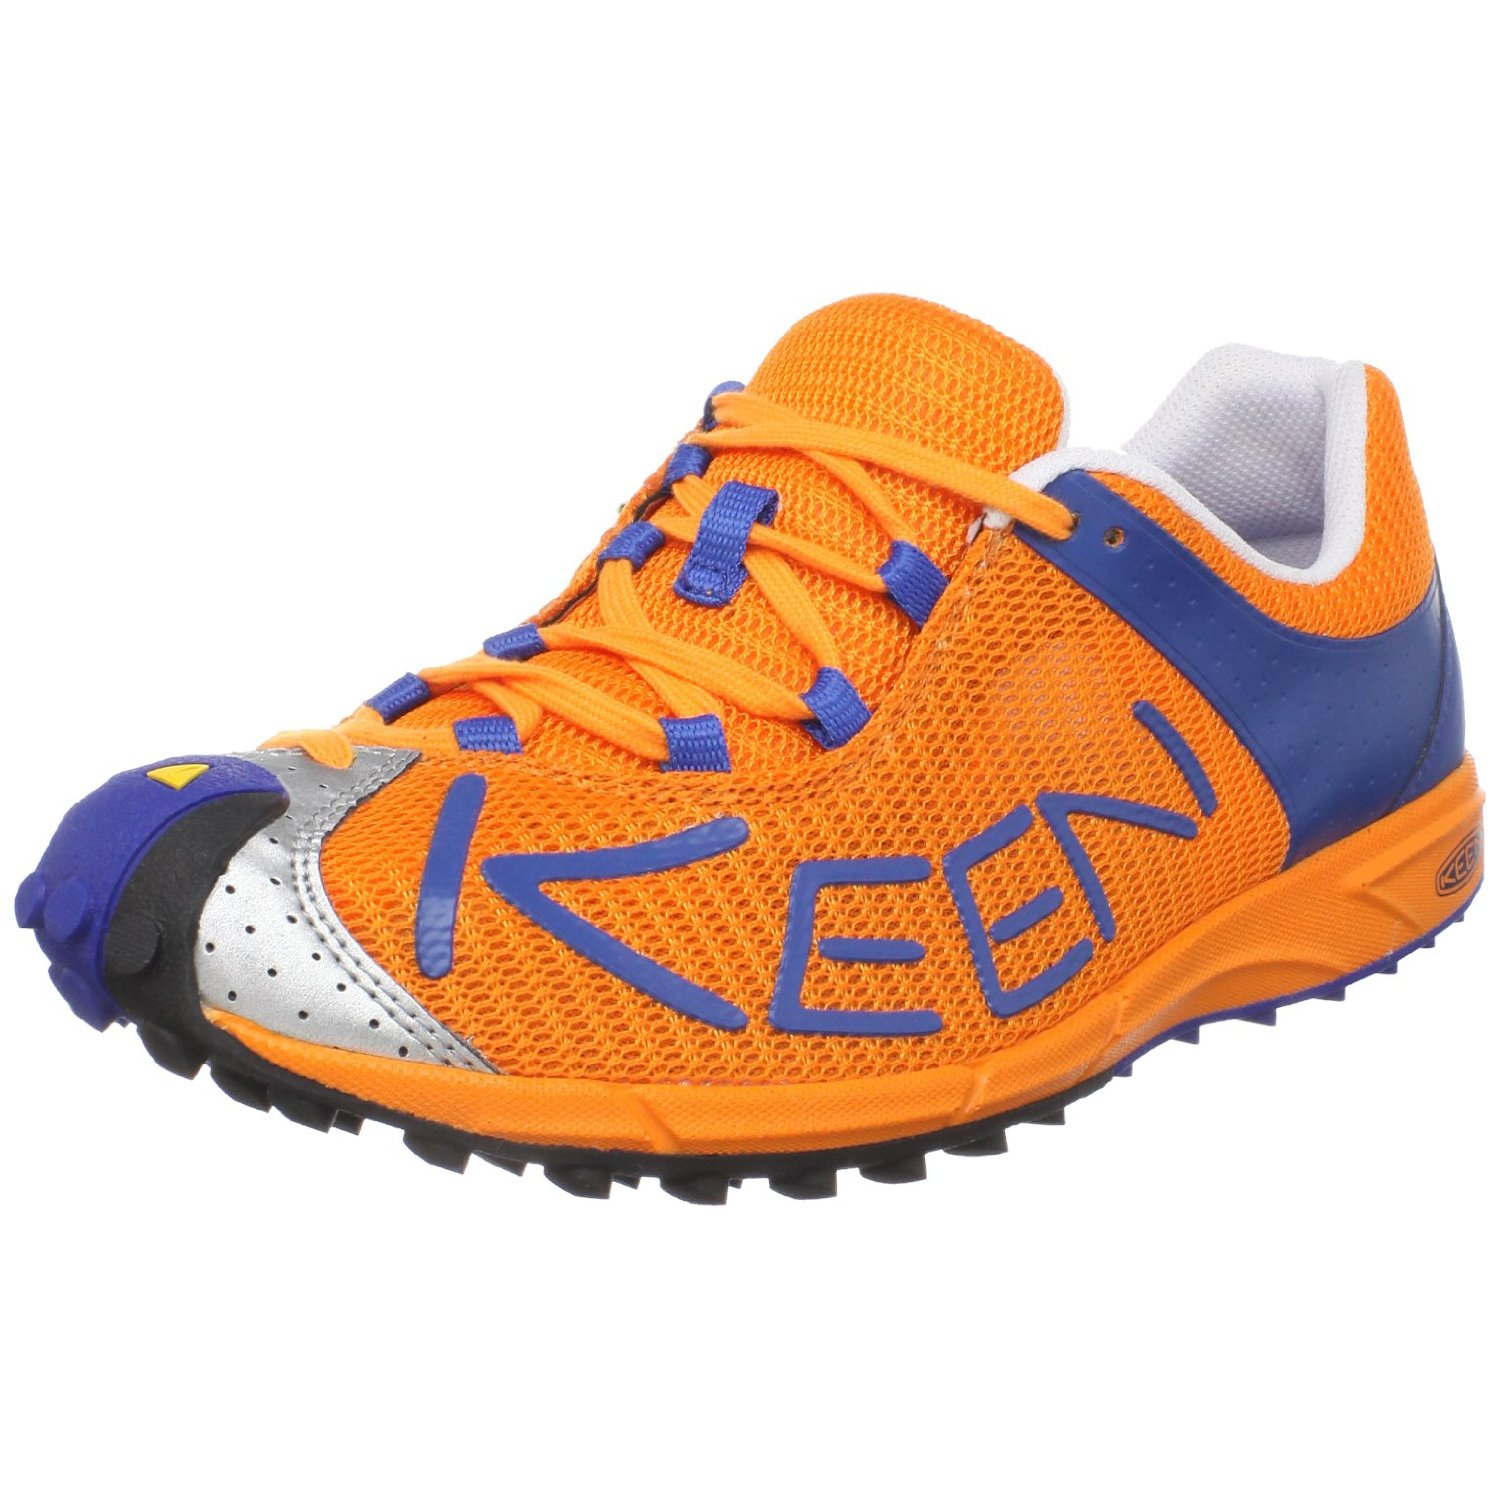 Keen Gym Shoes